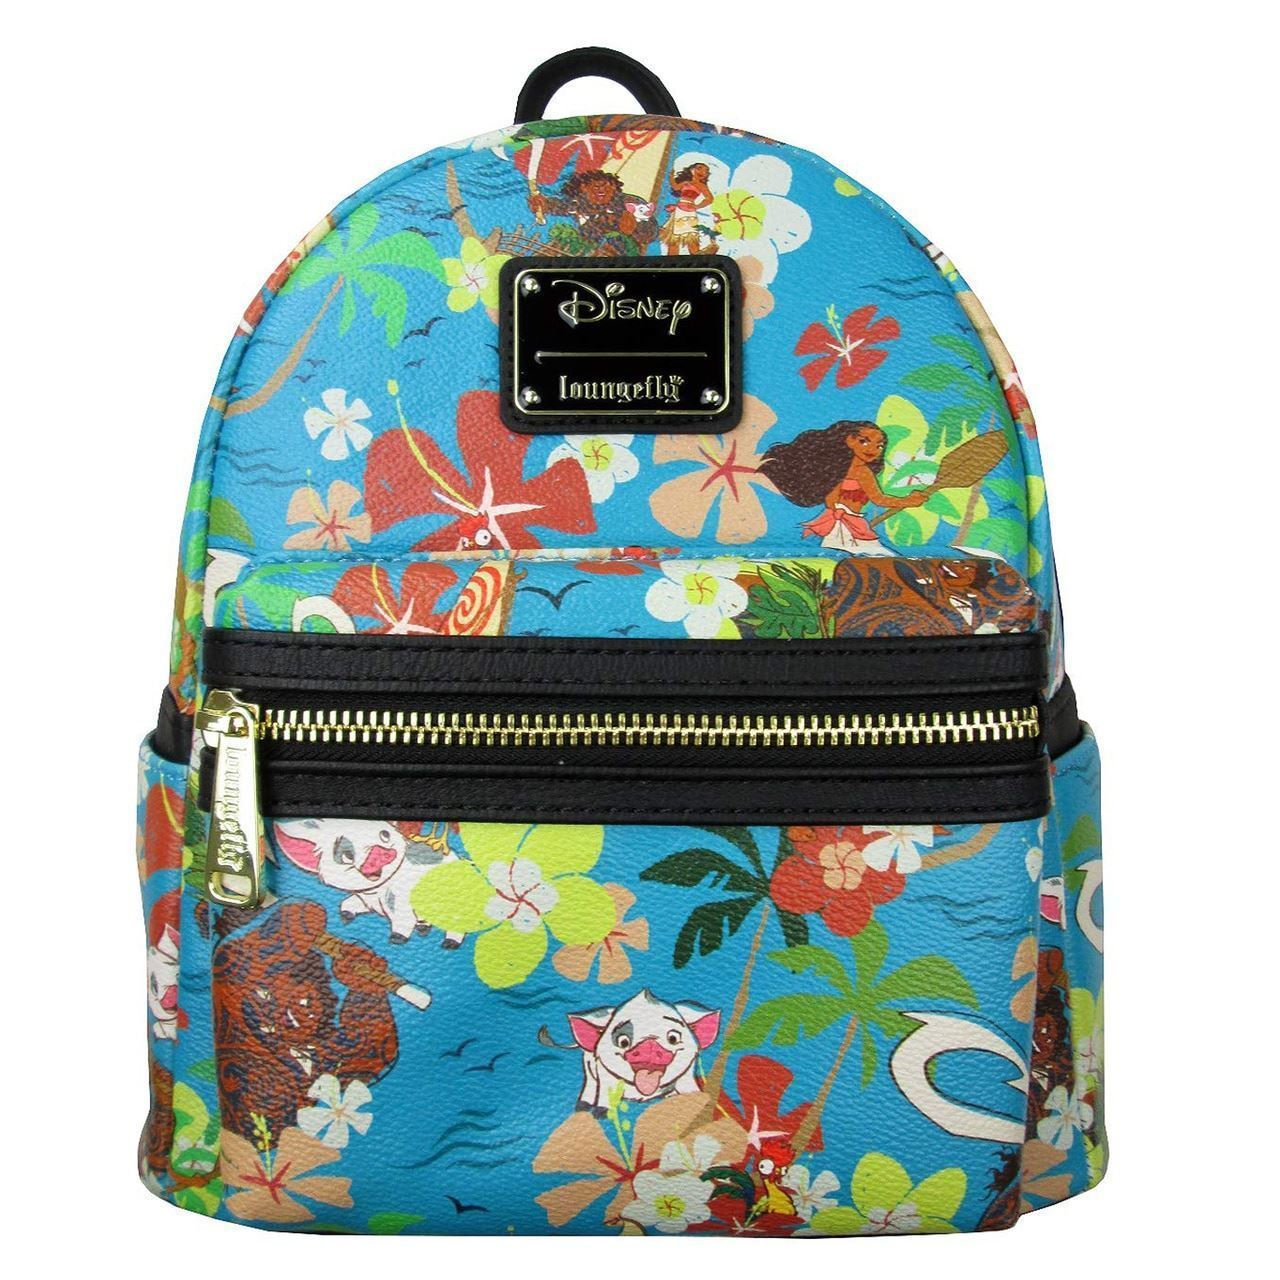 67461e355d Deluxe Loungefly Disney Moana Floral Mini Backpack PU Leather Purse ...